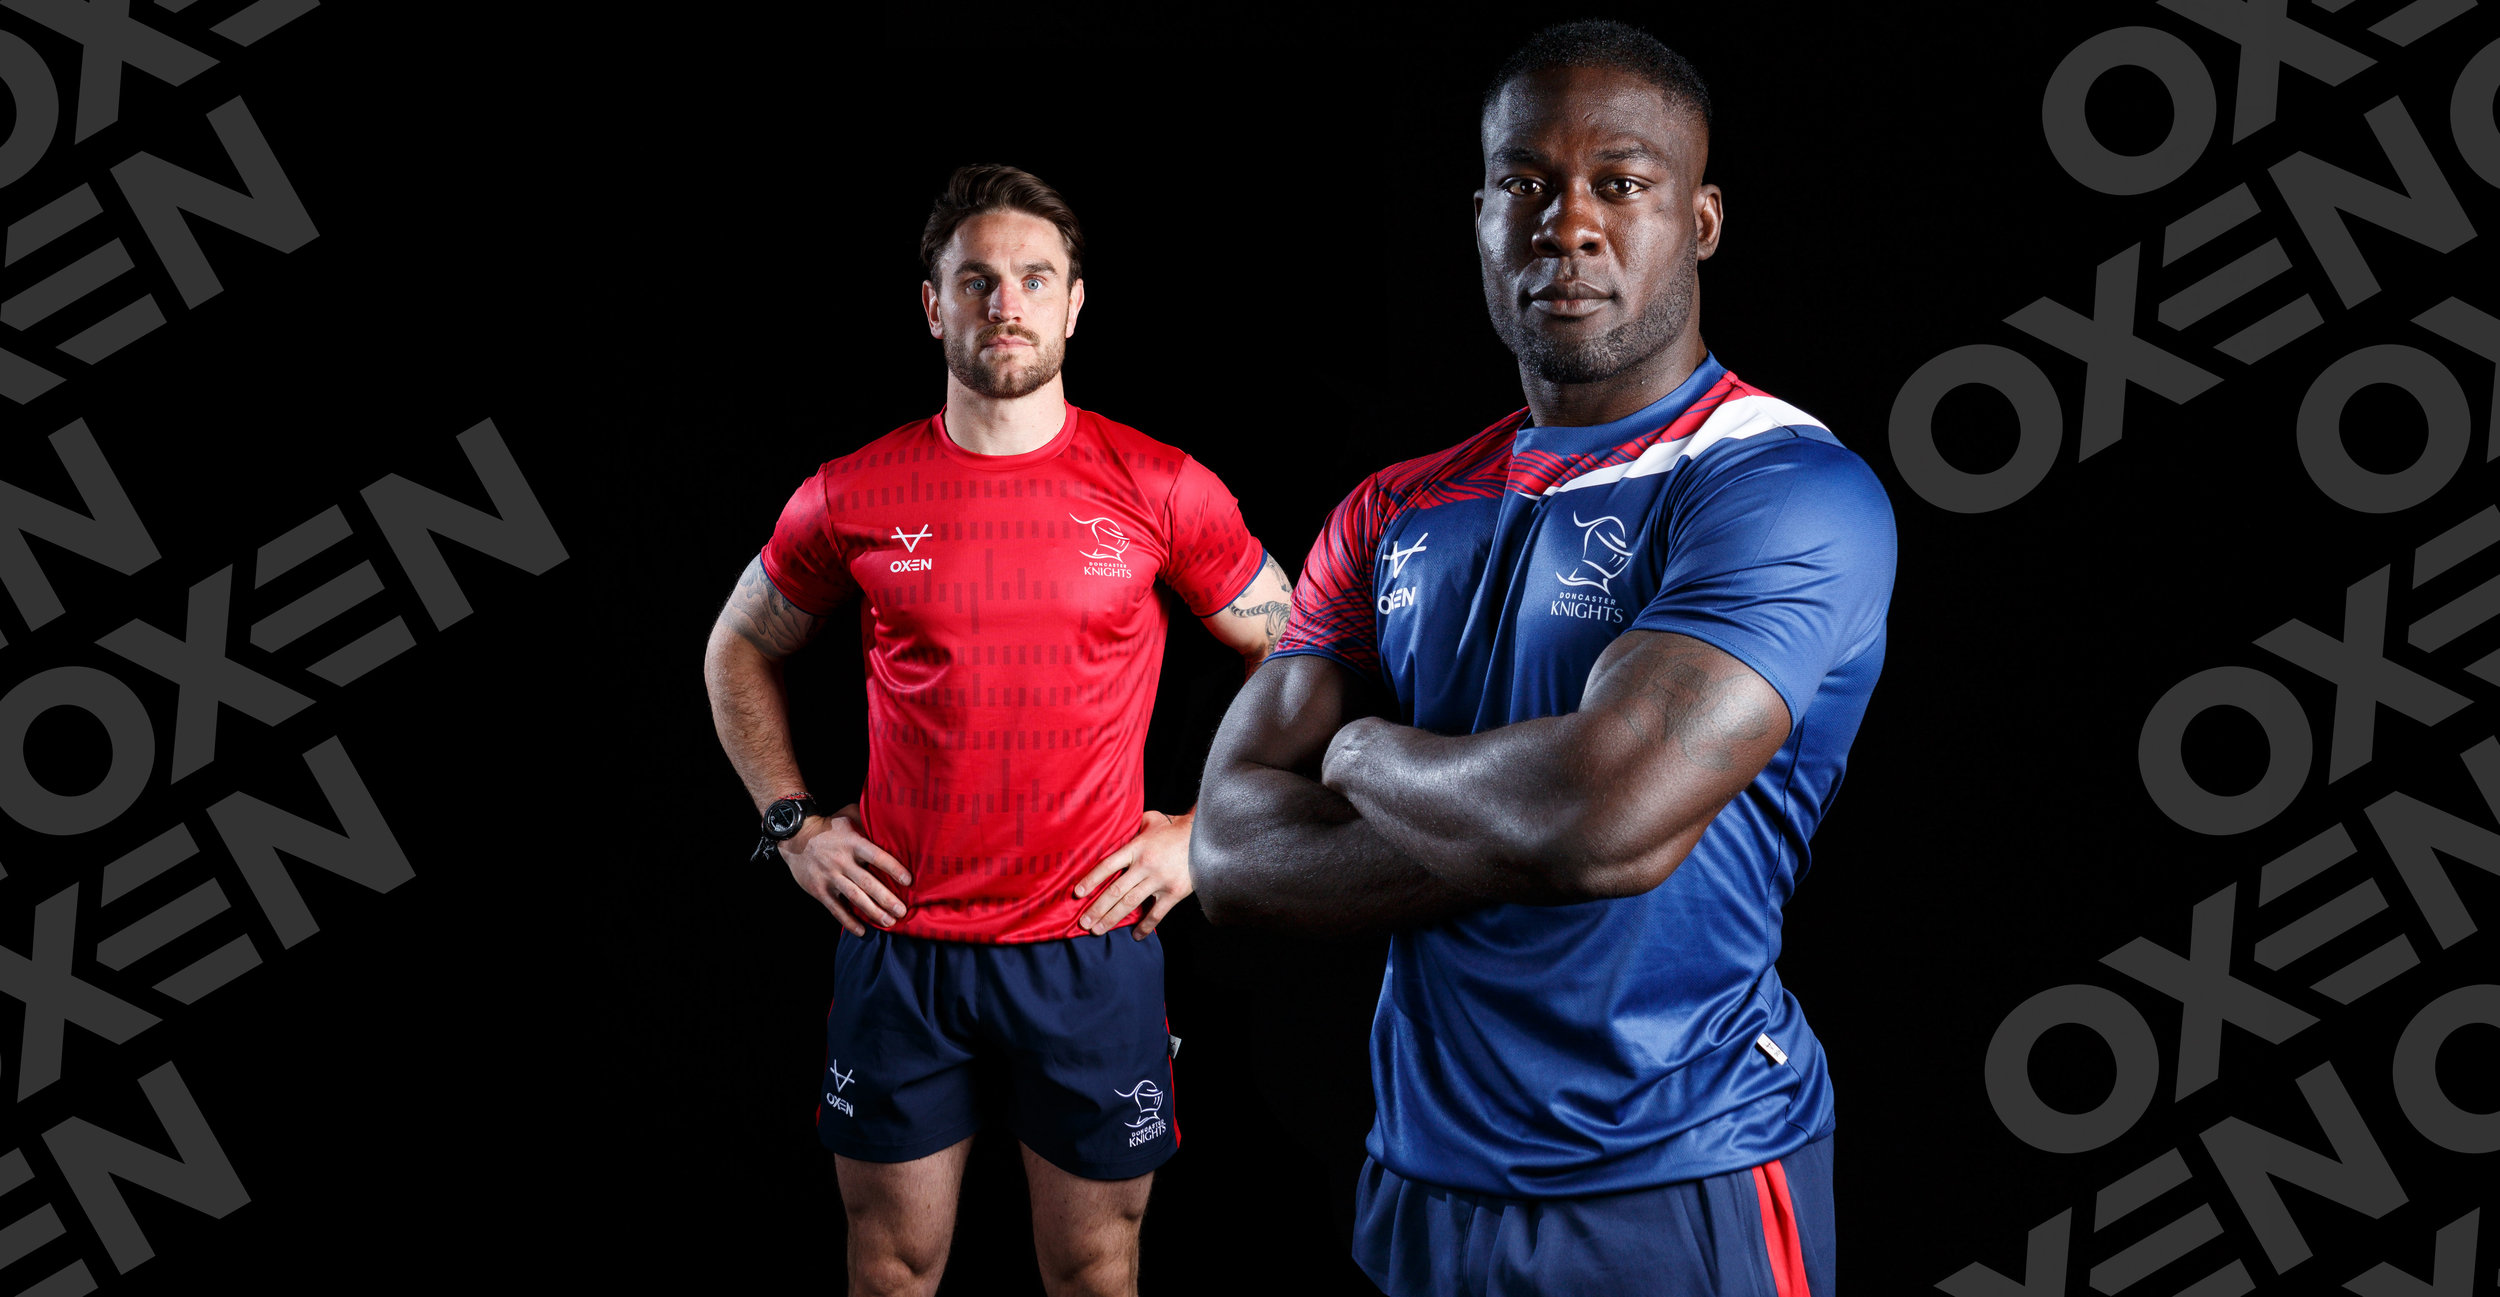 - DONCASTER KNIGhTS